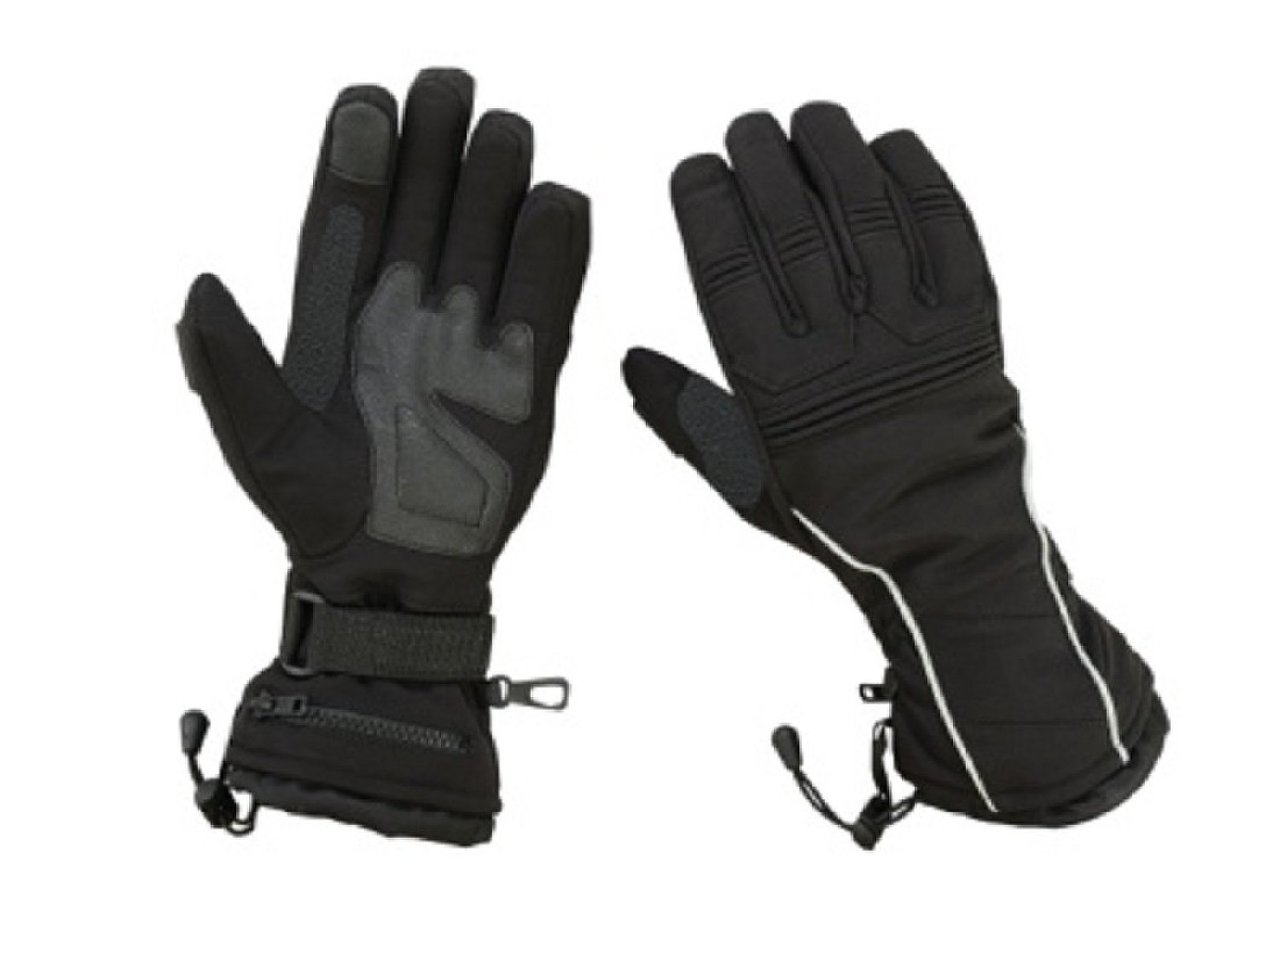 Hugger Women's Textile Gauntlet Snowmobile Ski Driving Winter Gloves